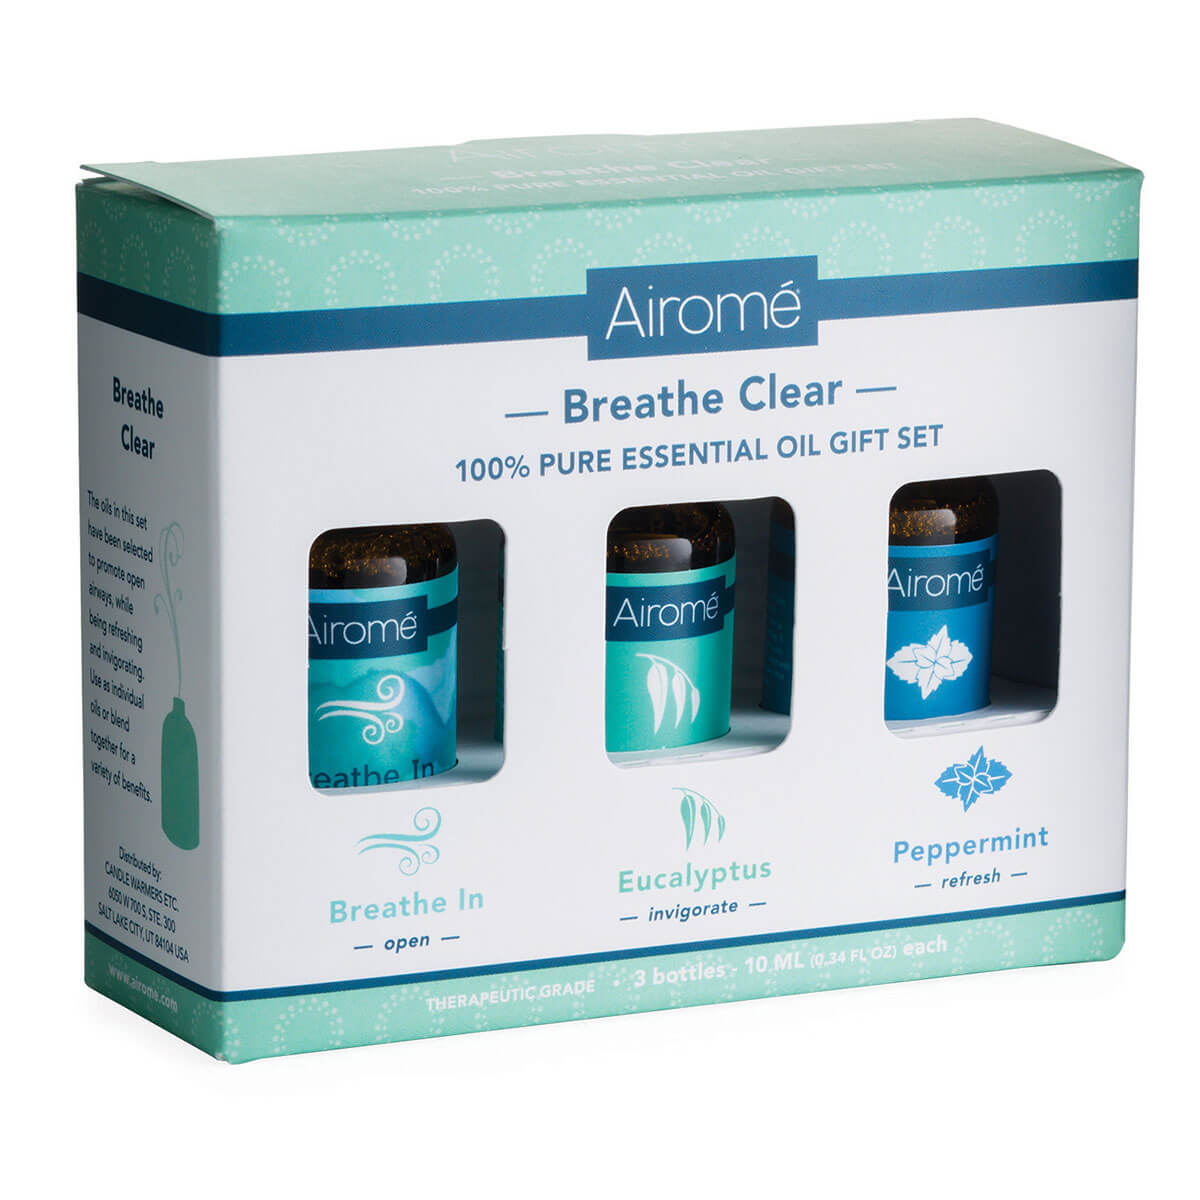 Airome Pure Essential Oil Gift Set - Breathe Clear